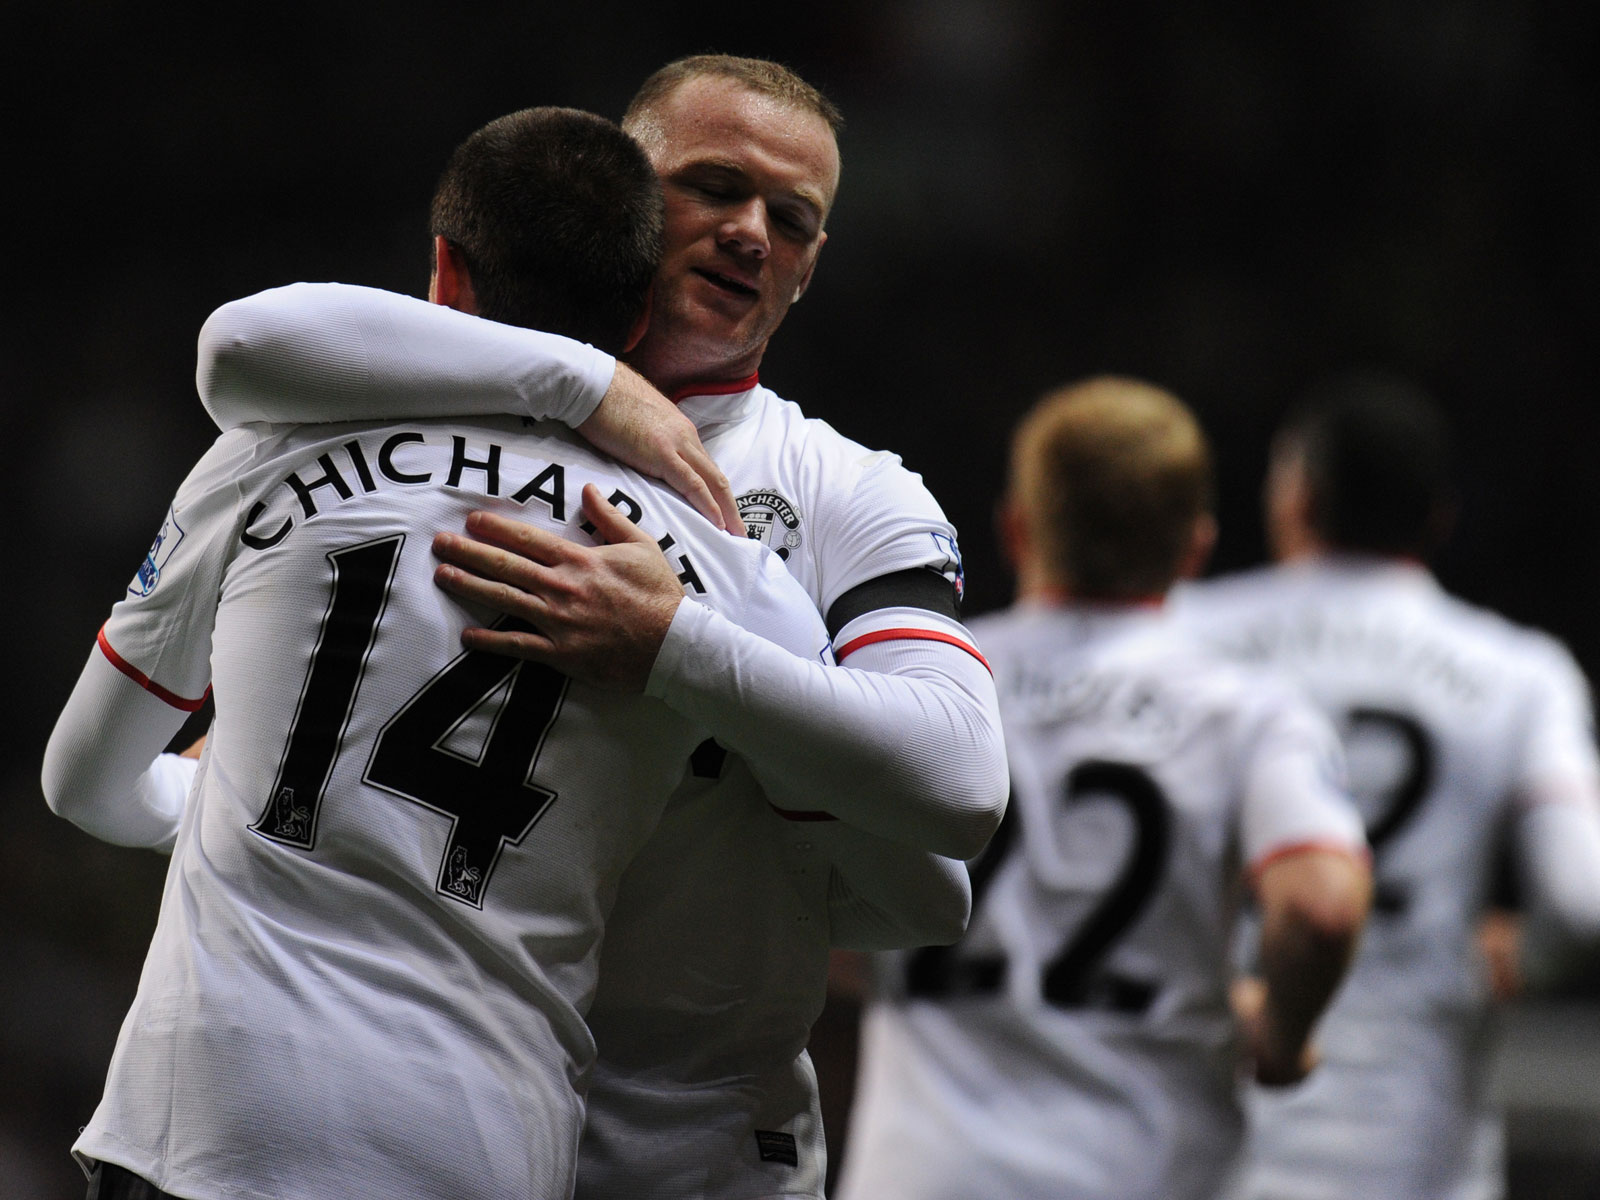 Wayne Rooney and Javier Hernandez hug while playing for Manchester United in 2012